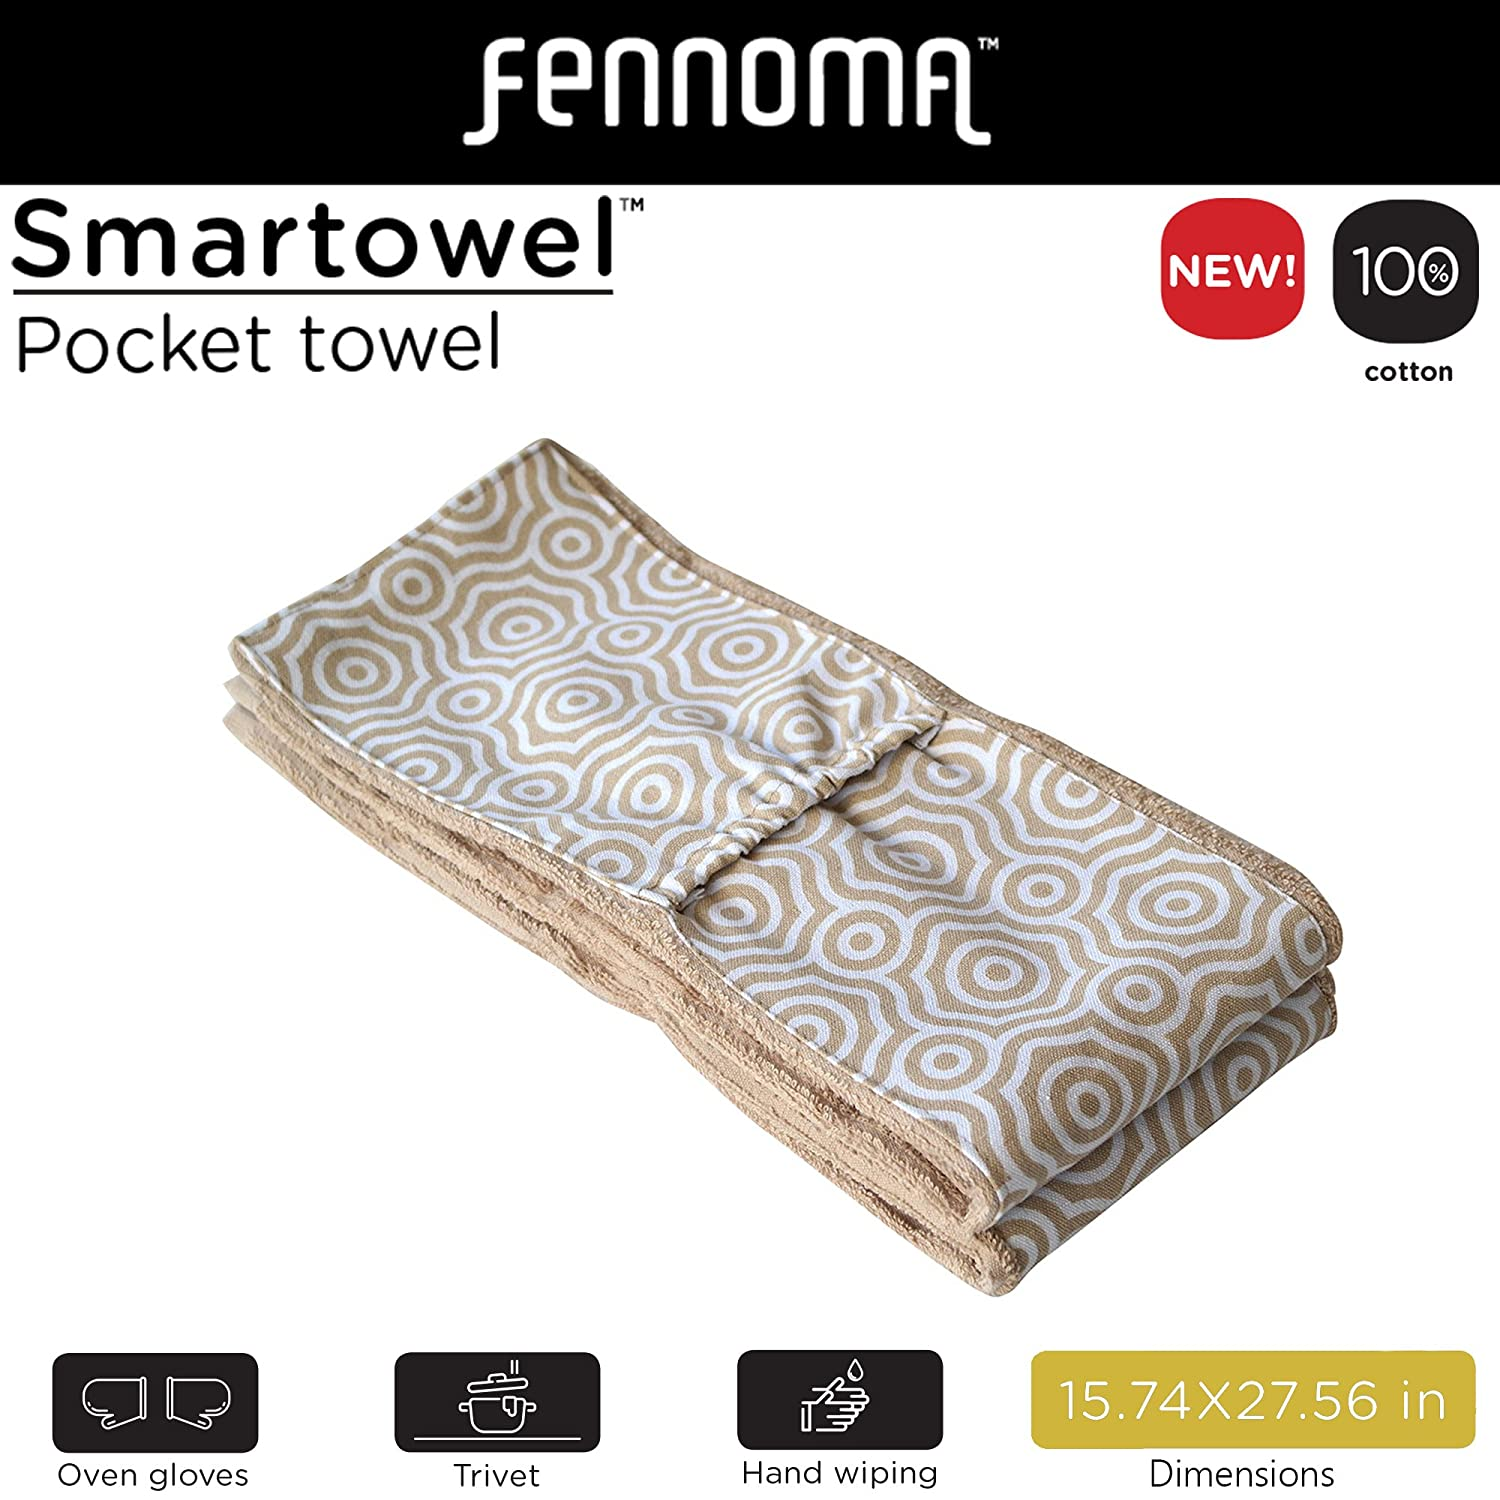 100/% Pure Cotton,kitchen dish towel Cooking Gloves /& Trivet Trivet and oven mitts and Highly Absorbent Fennoma Smart Towel 3-in-1 Pocket Kitchen Towel